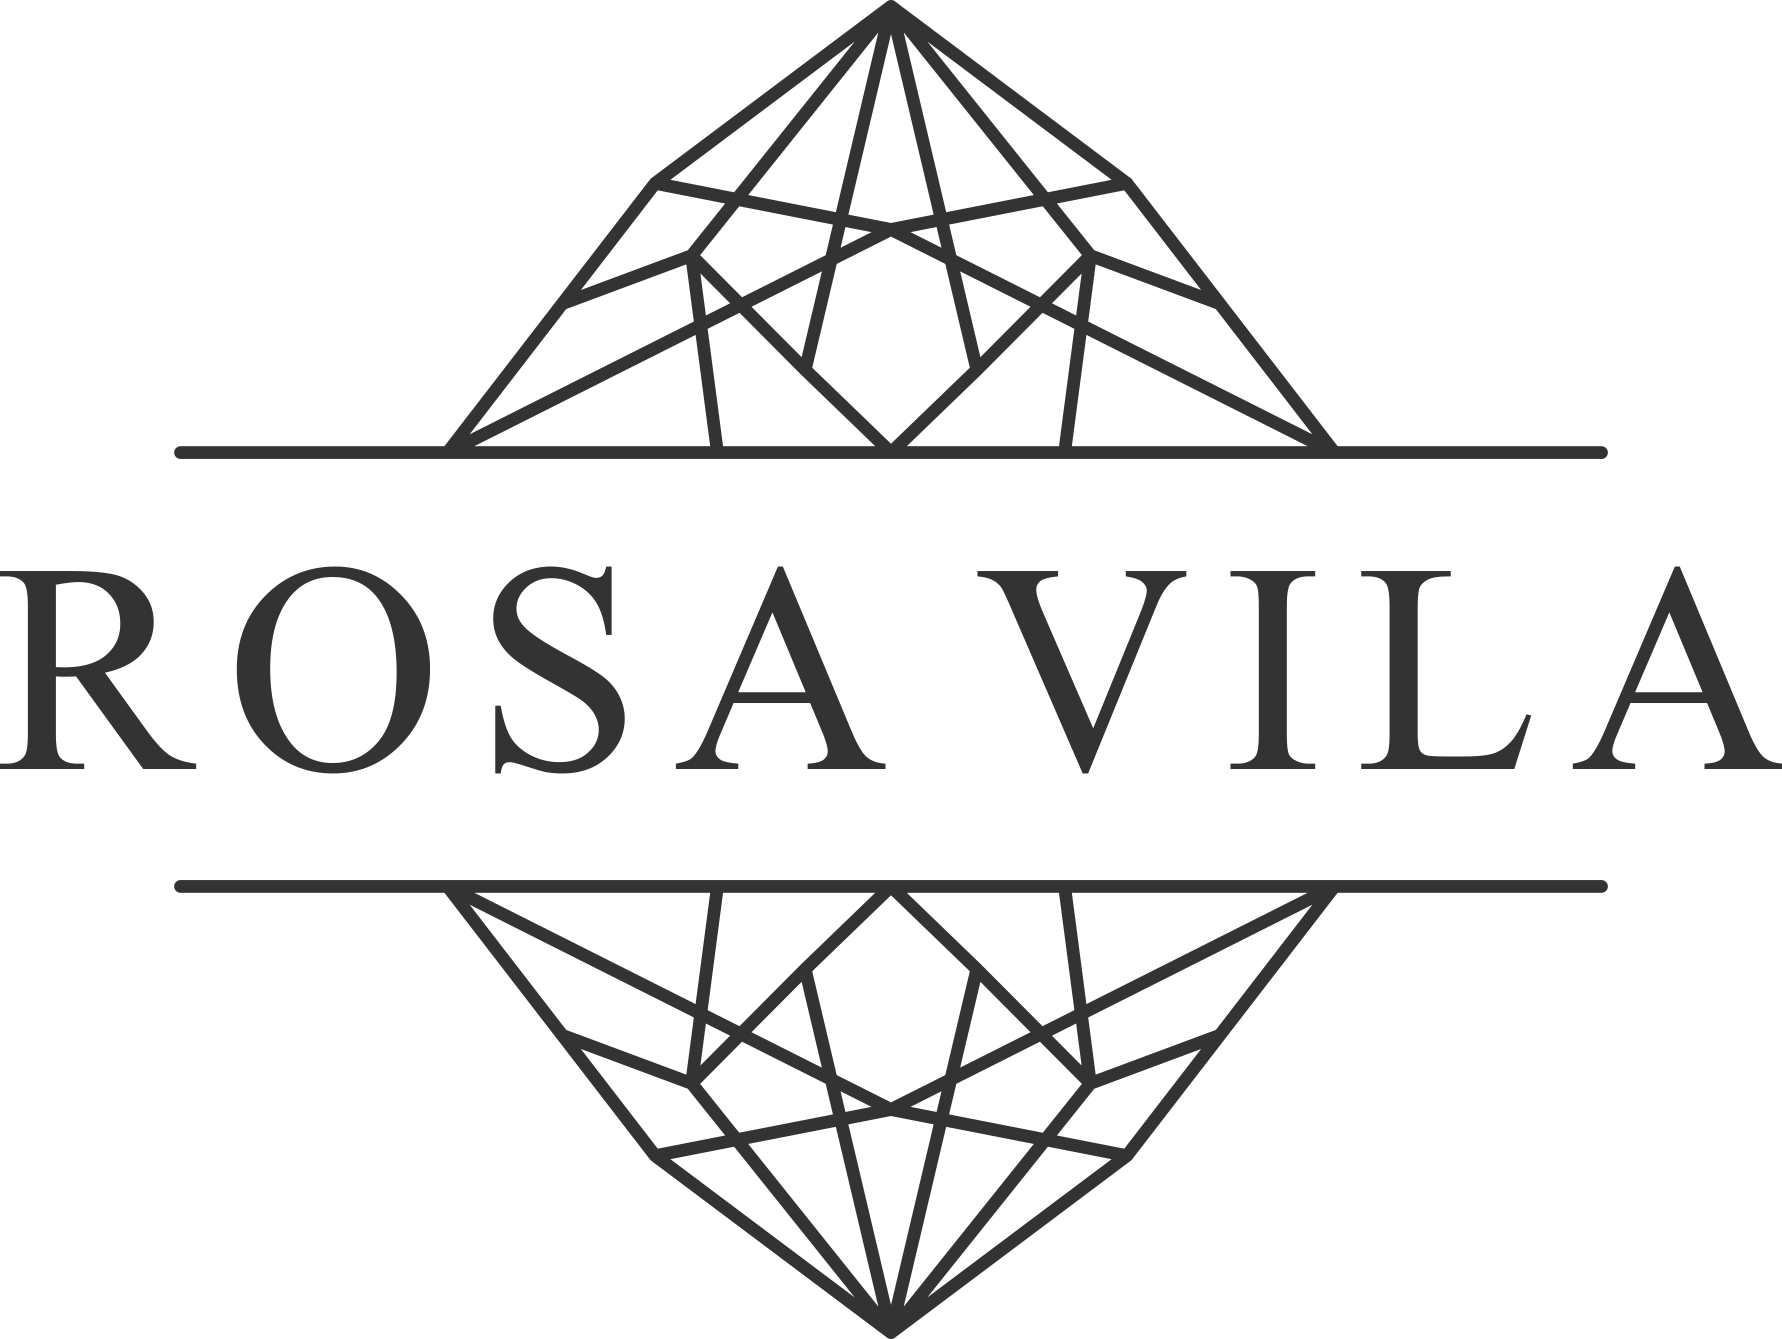 Rosa Vila Boutique